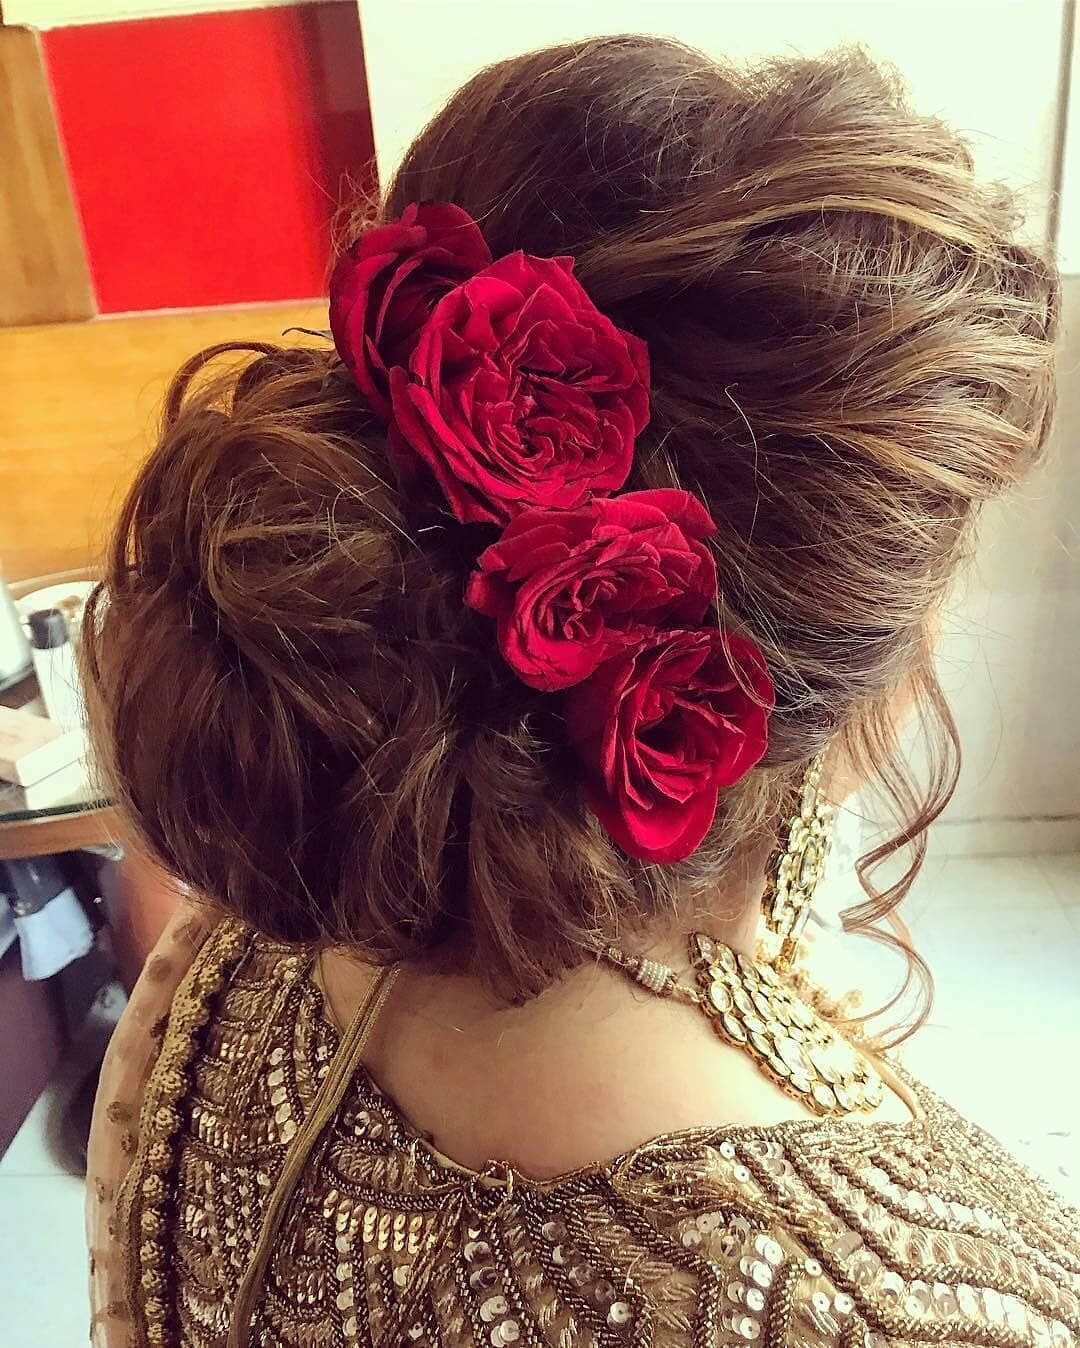 Trending Bridal Hairstyle For Short Hair Bridal Hairstyle Bridal Inspiration Indian W In 2020 Indian Wedding Hairstyles Bridal Hair Buns Bridal Hair Inspiration